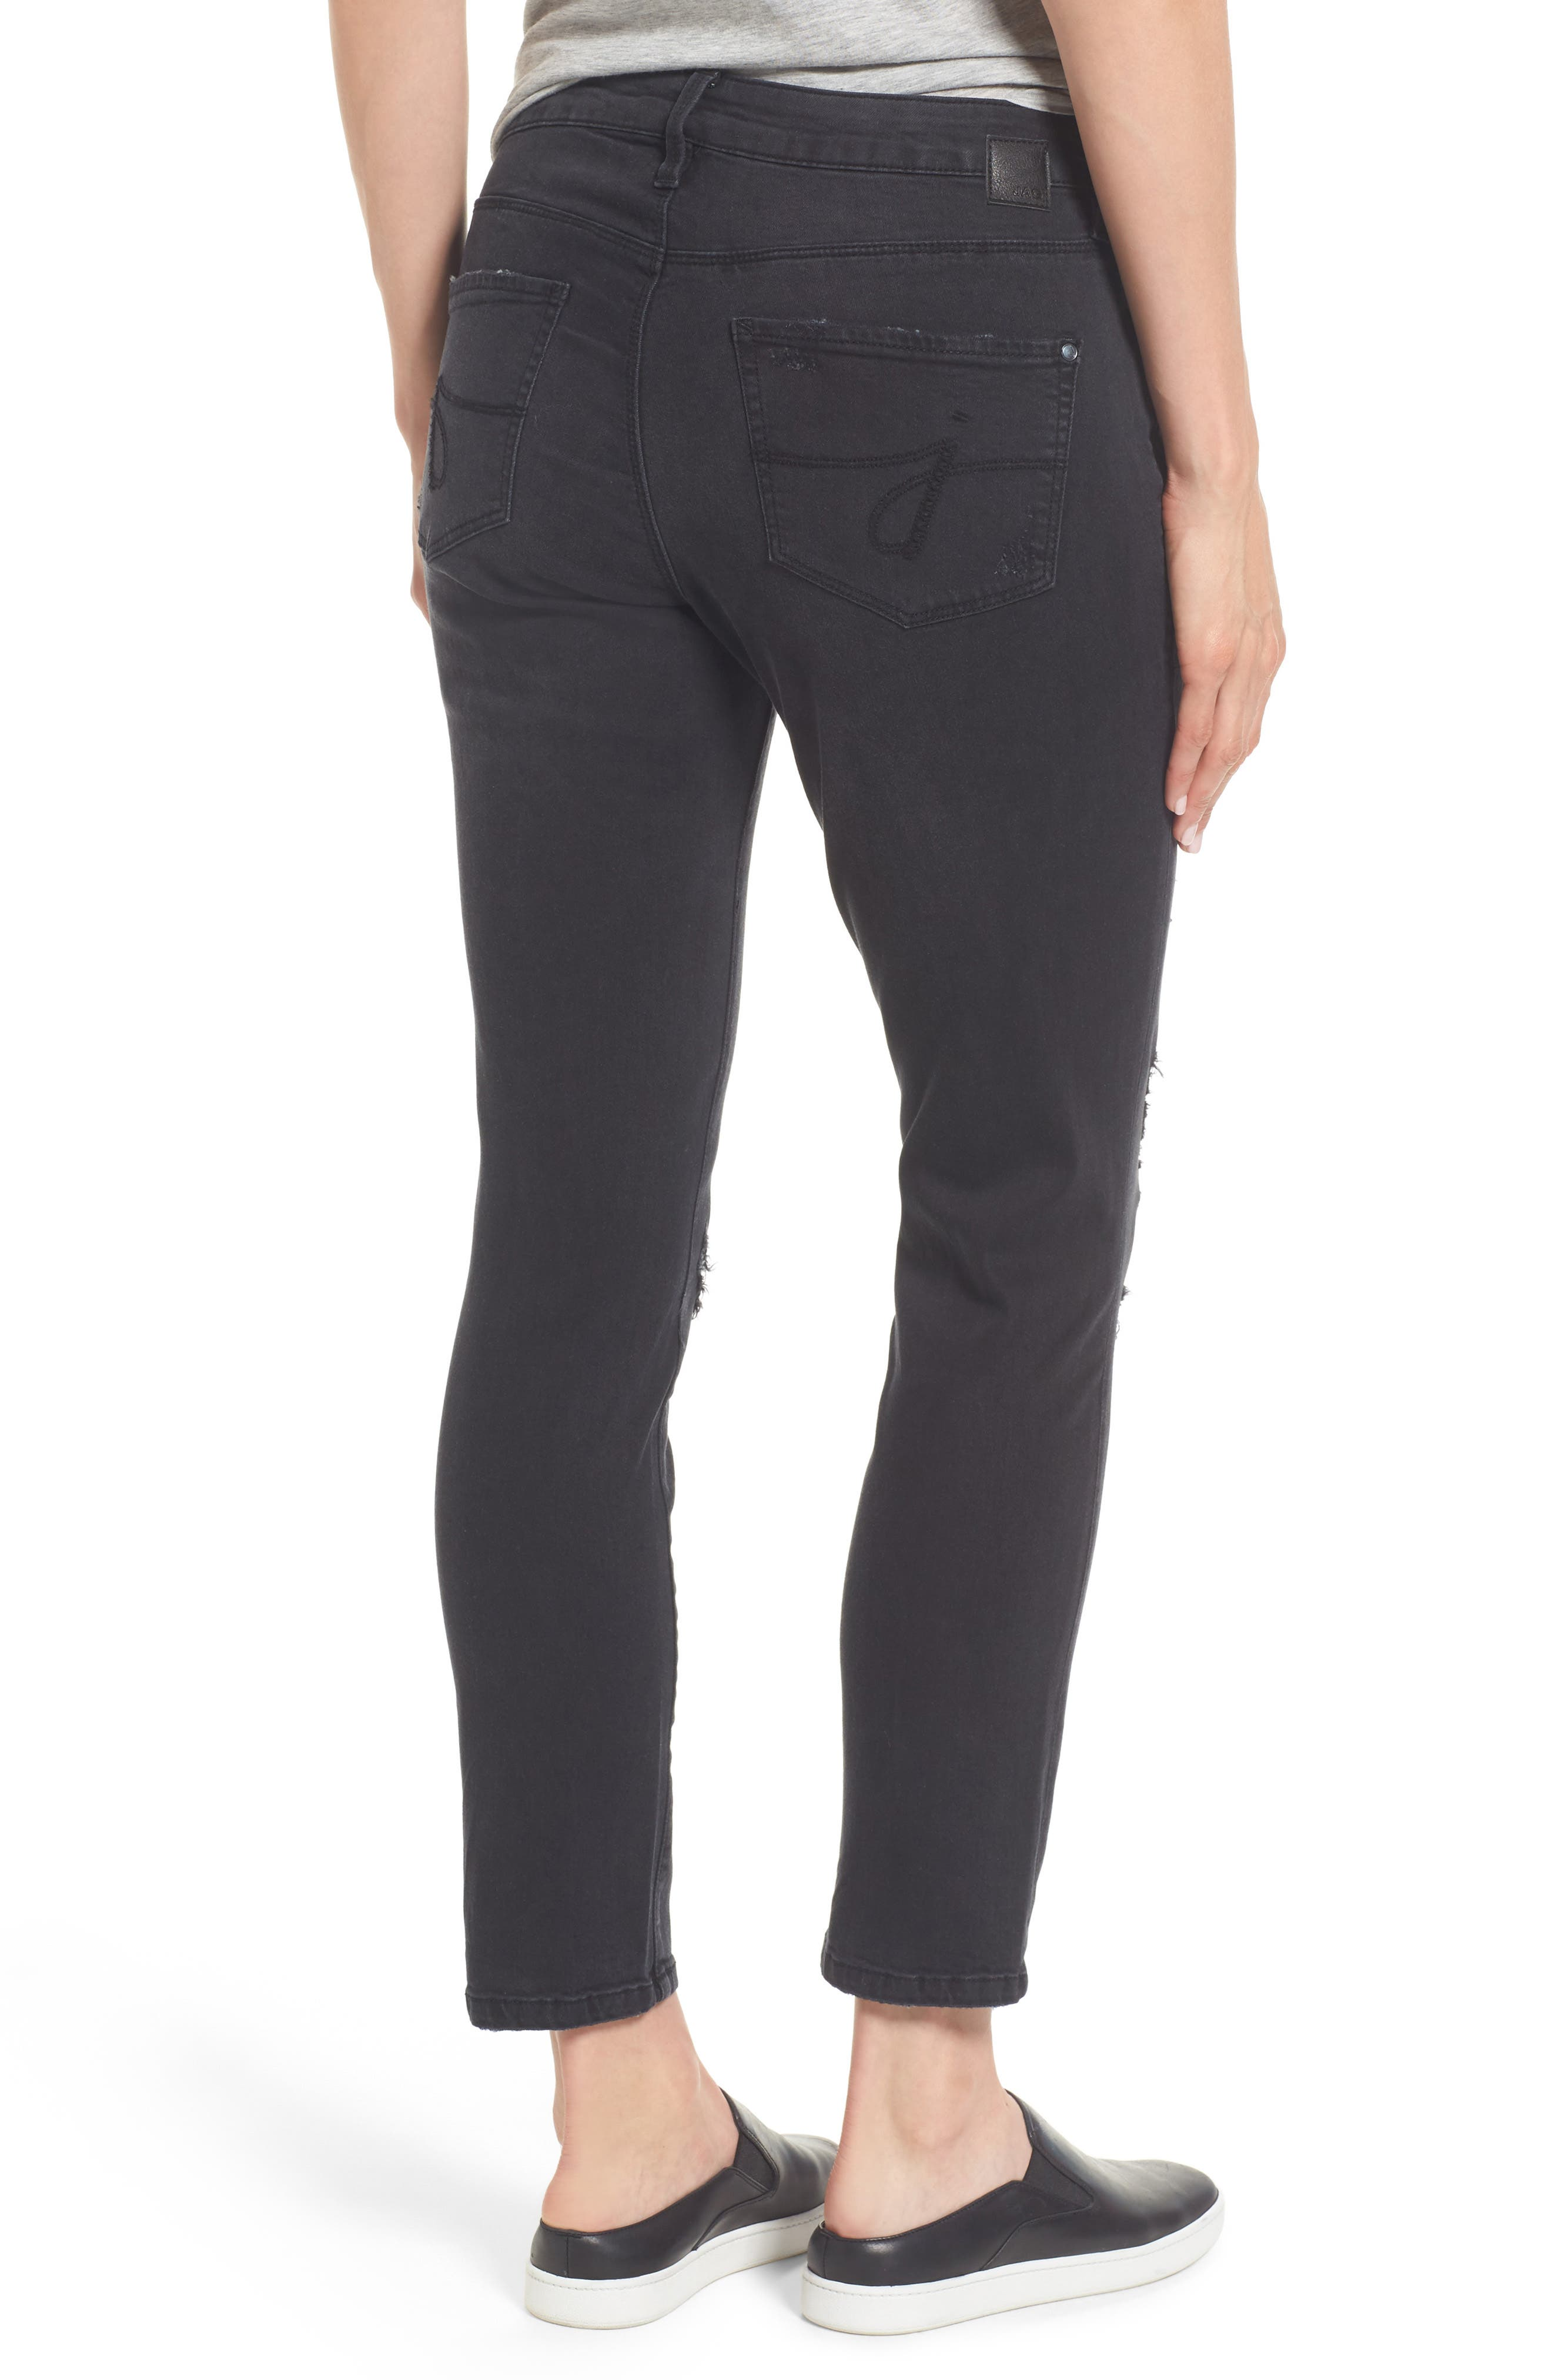 Mera Distressed Skinny Ankle Jeans,                             Alternate thumbnail 2, color,